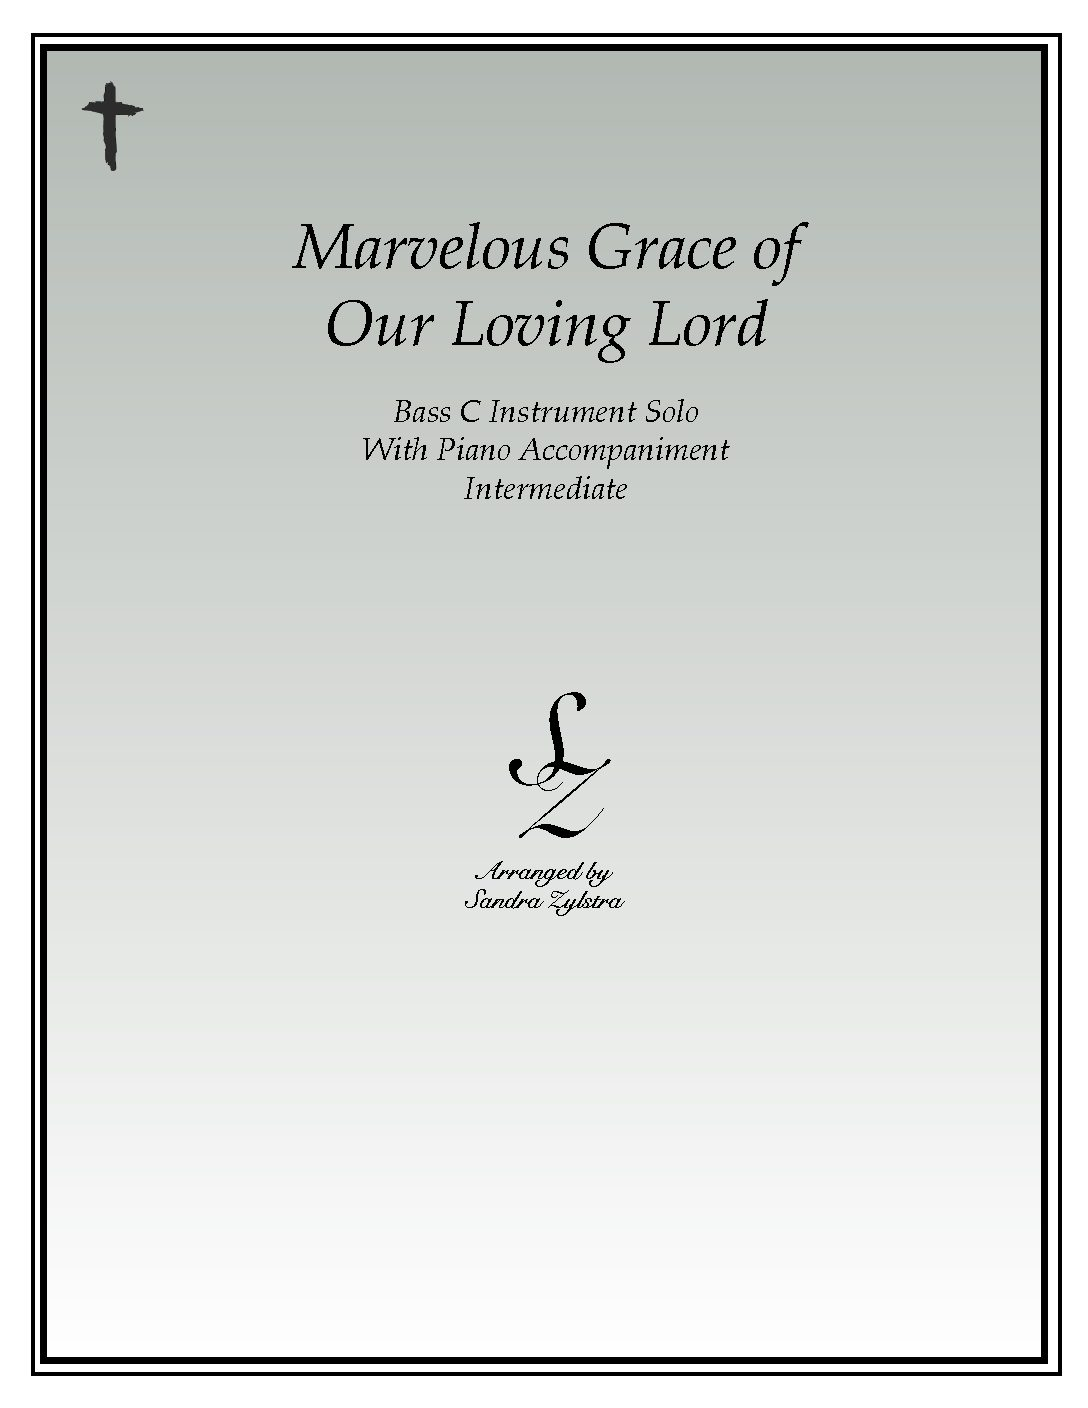 IS 43 Marvelous Grace of Our Loving Lord 05 Bass C pdf